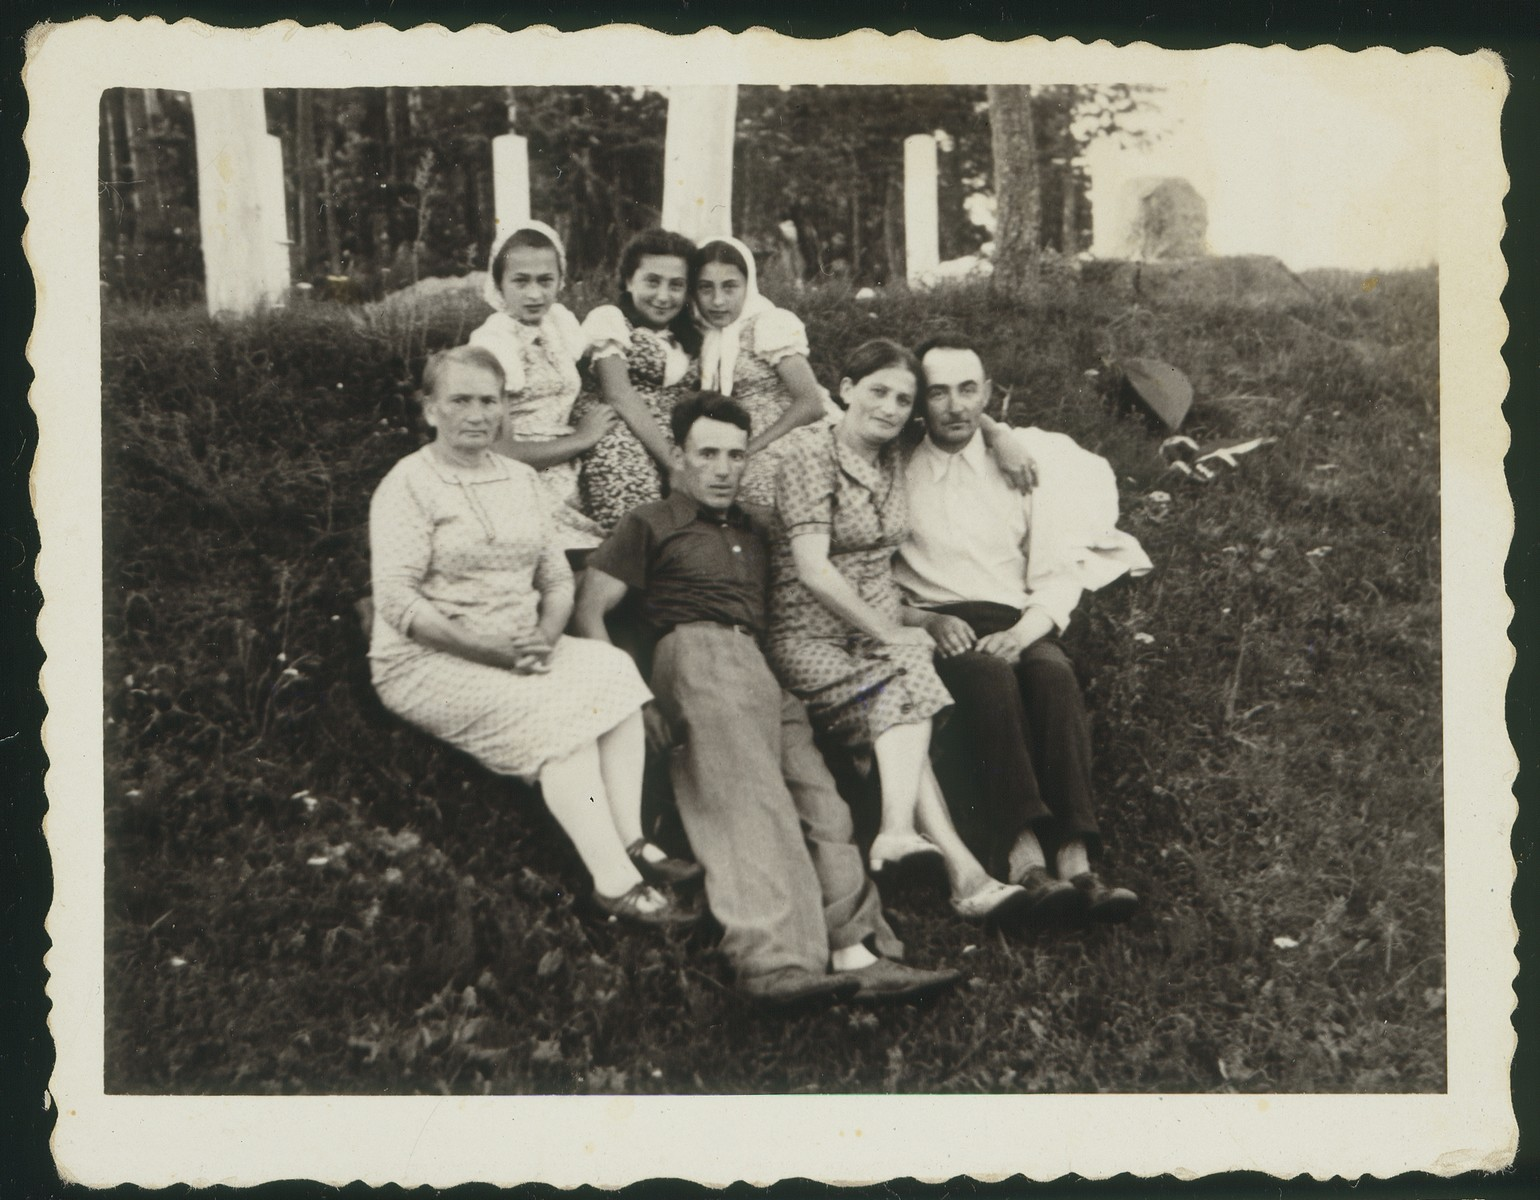 Portrait of the Michalowski family taken in a park.  Sitting in the front row, right to left:  Maneh Michalowski, Bluma Zlotnik Michalowski, unknown, Hayya Fradl Zlotnik Broide (Bluma's sister). Back row: the Michalowski children.  Bluma and her sister Hayya Fradl were murdered by Lithuanian collaborators as they tried to escape the September 1941 massacre.  Maneh Michalowski and all the Michalowski children were murdered in the September 1941 massacre.